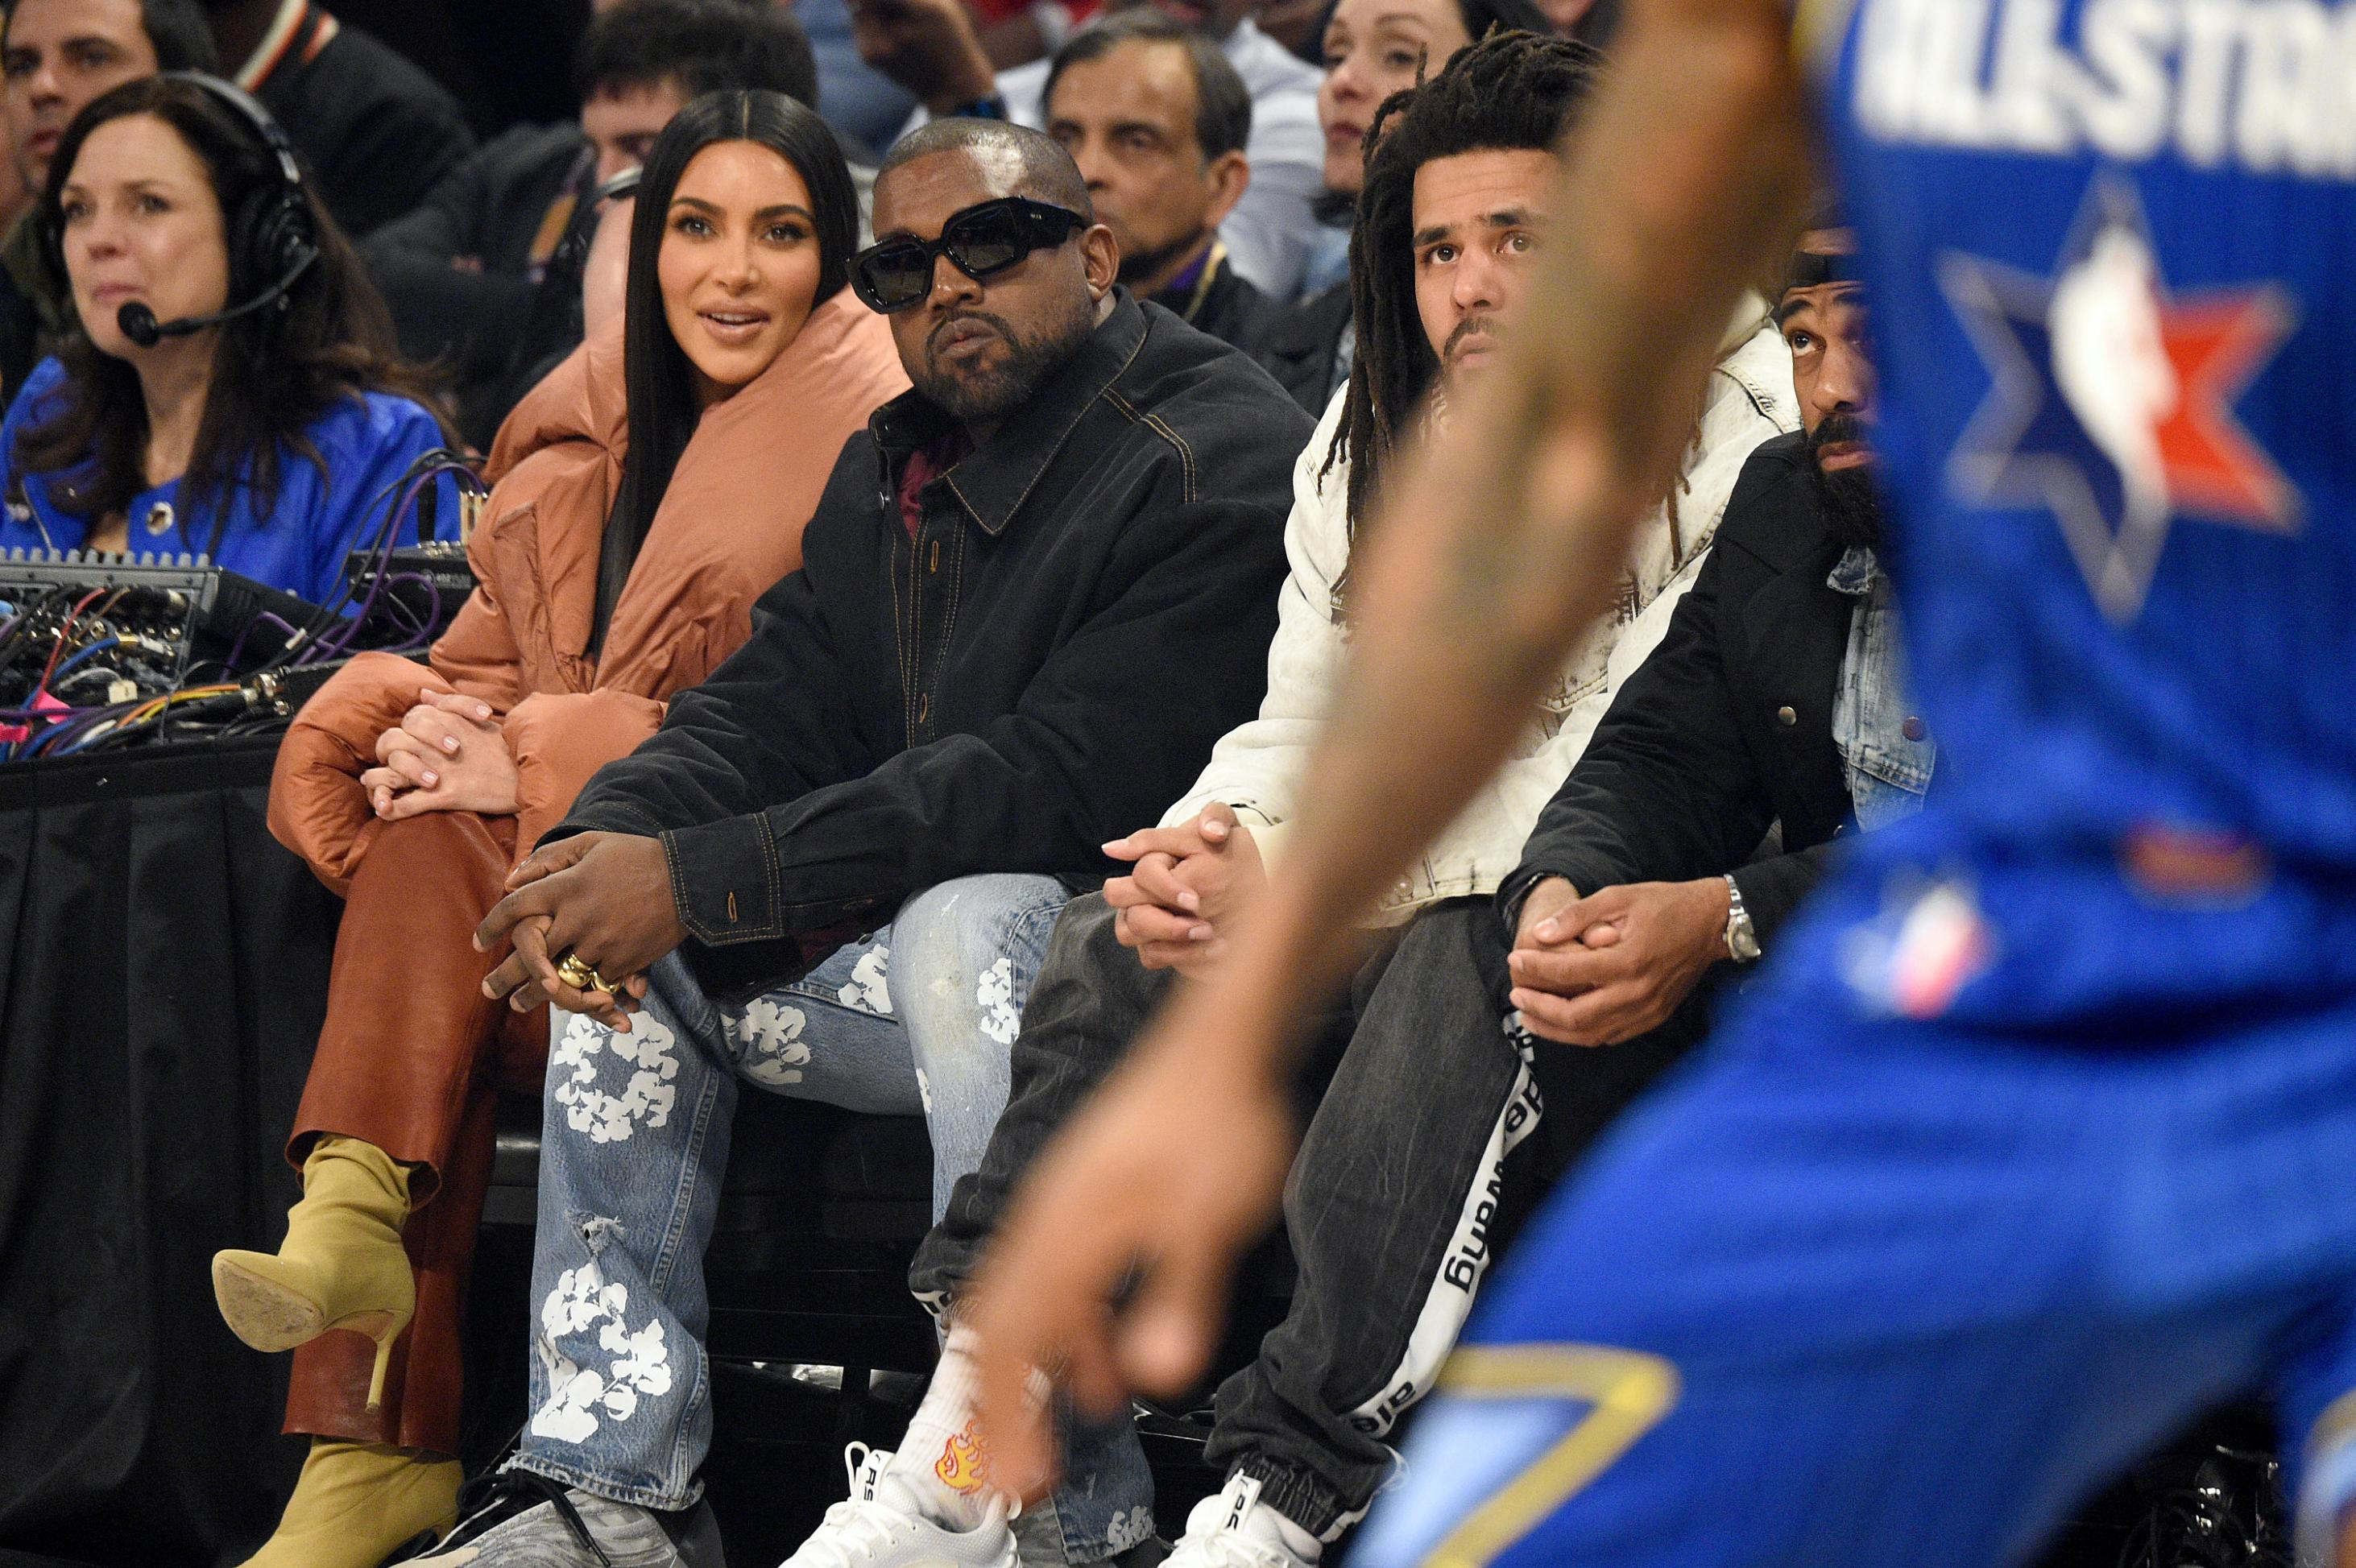 Kanye West attended the All-Star game but didn't perform